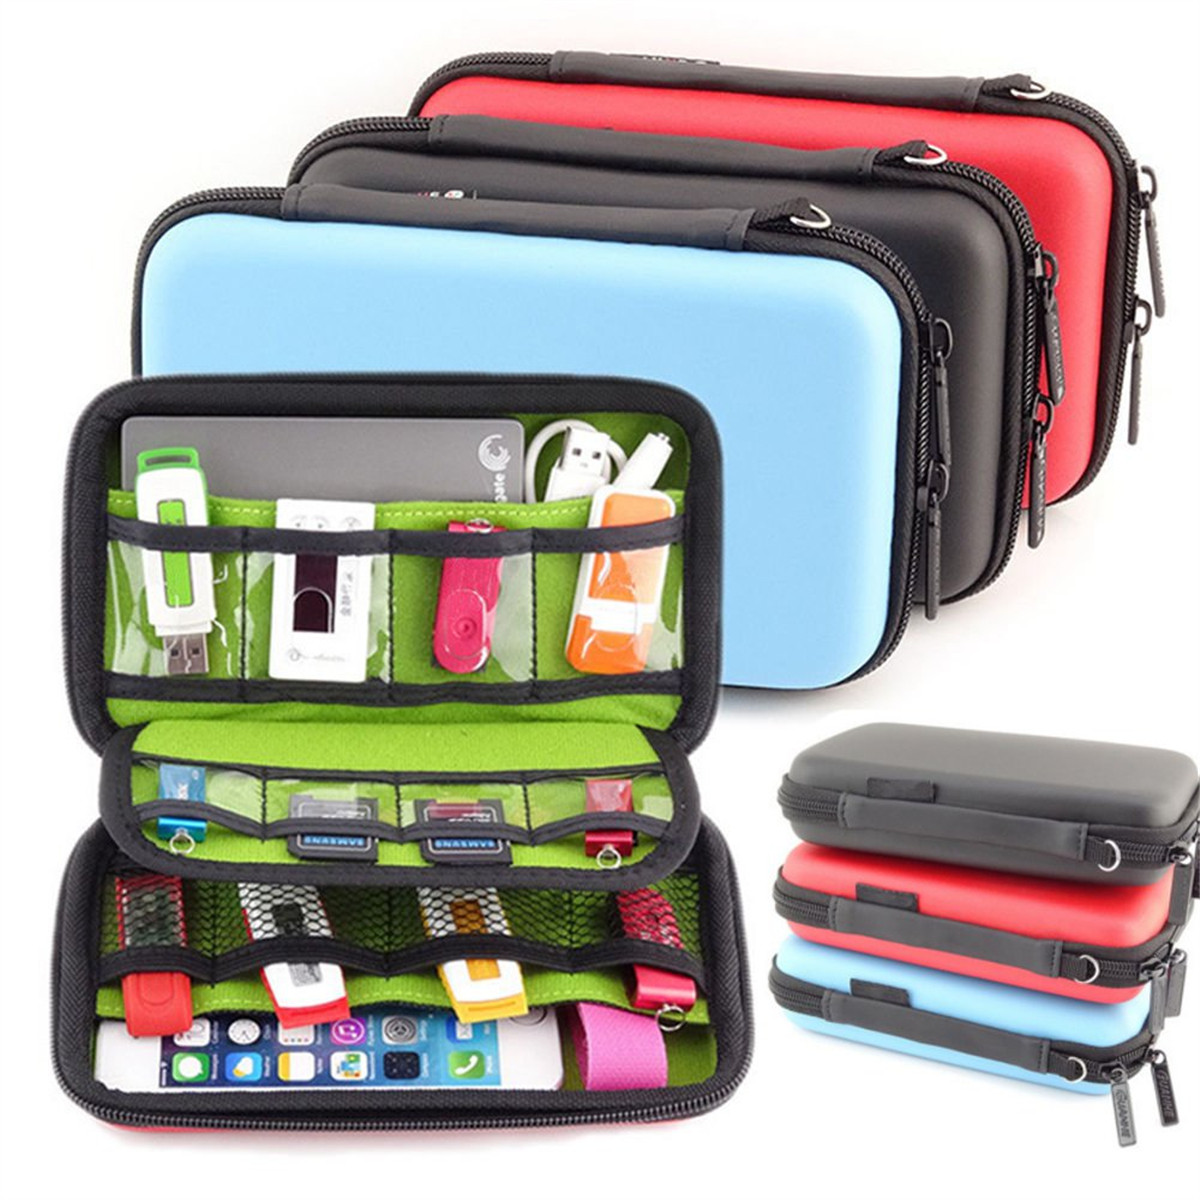 Waterproof Travel Carrying Case Storage Protection Pouch Bag  Shockproof Protective Pouch Box for USB Flash Drive